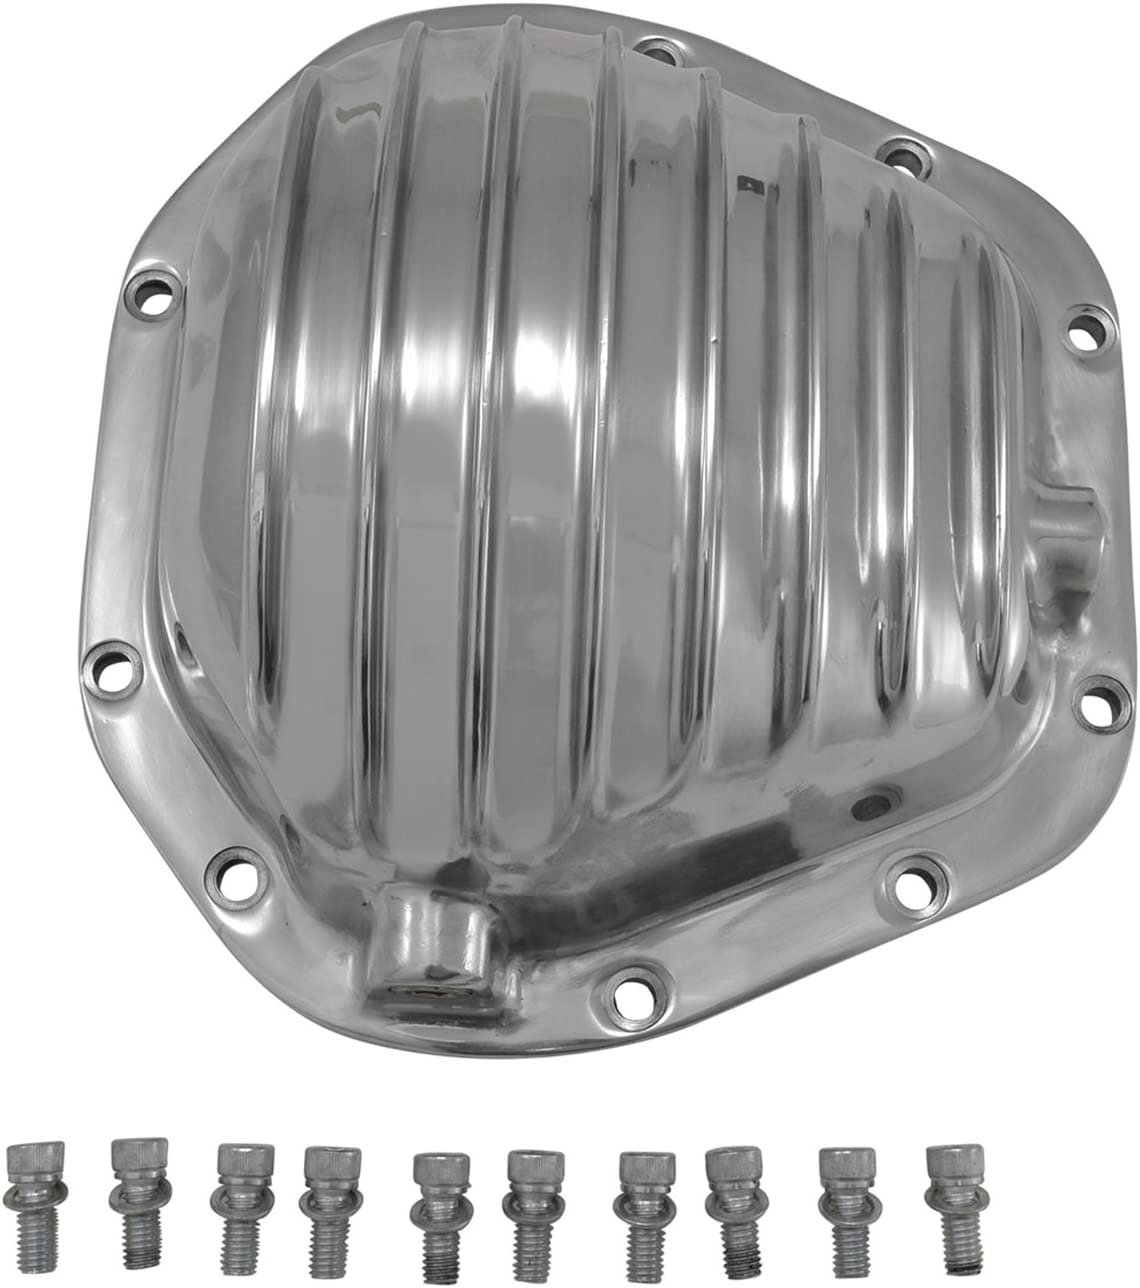 Yukon Gear safety Axle YP Cheap super special price Replacement C2-D60-STD Aluminum Polished